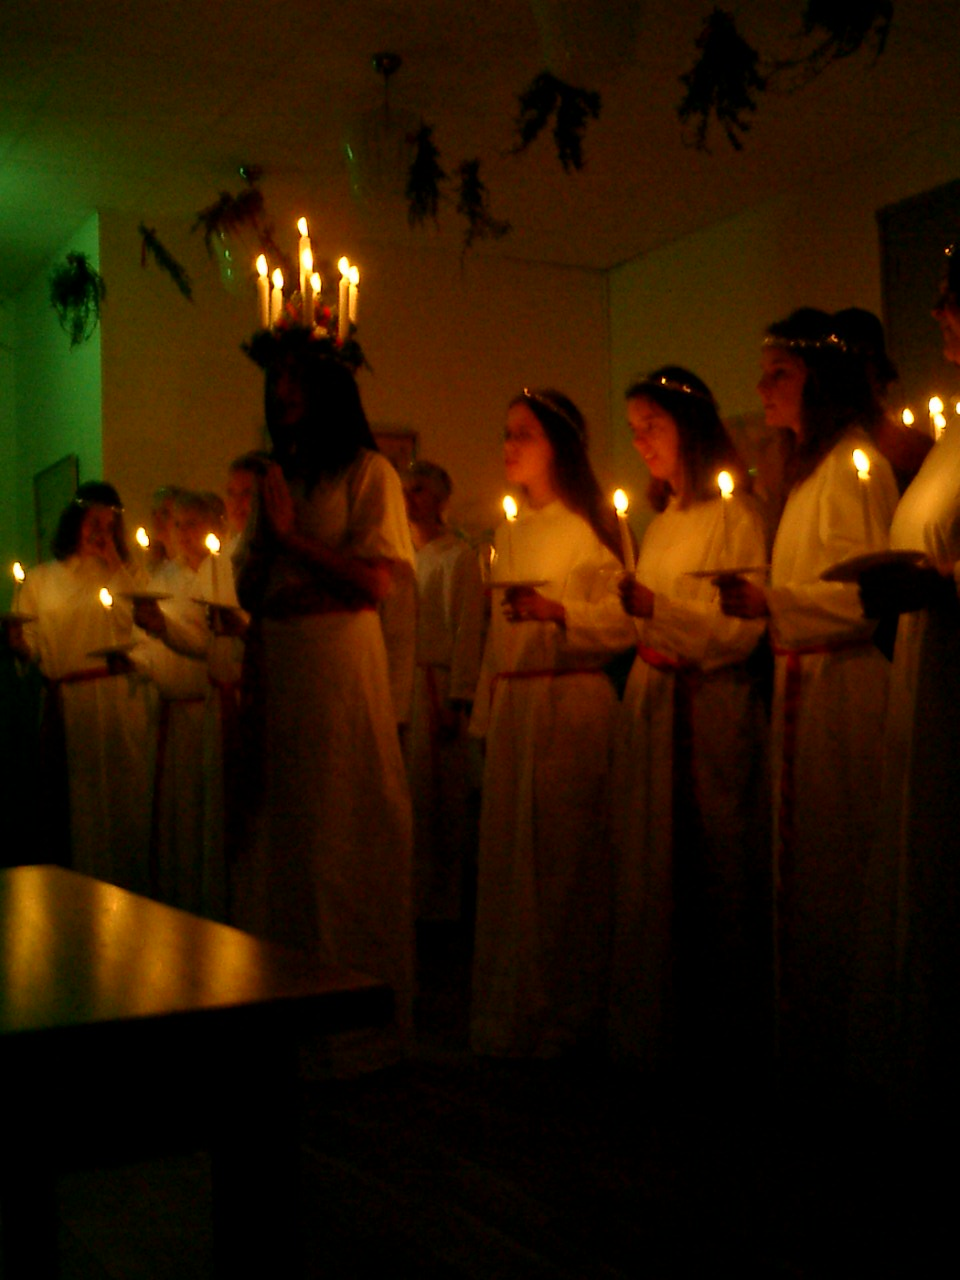 Happy St Lucia! I dug up this old photo from the Luciatåg at my school, Ölands Folkhögskola, back in the early 2000s (I'm the one right behind Lucia!). I wont have any time to bake goodies today as I'm still sewing up a storm, but I think I'll make up for it on Saturday at the Swedish Fair… plenty of lussekatter and sweets to be had there!